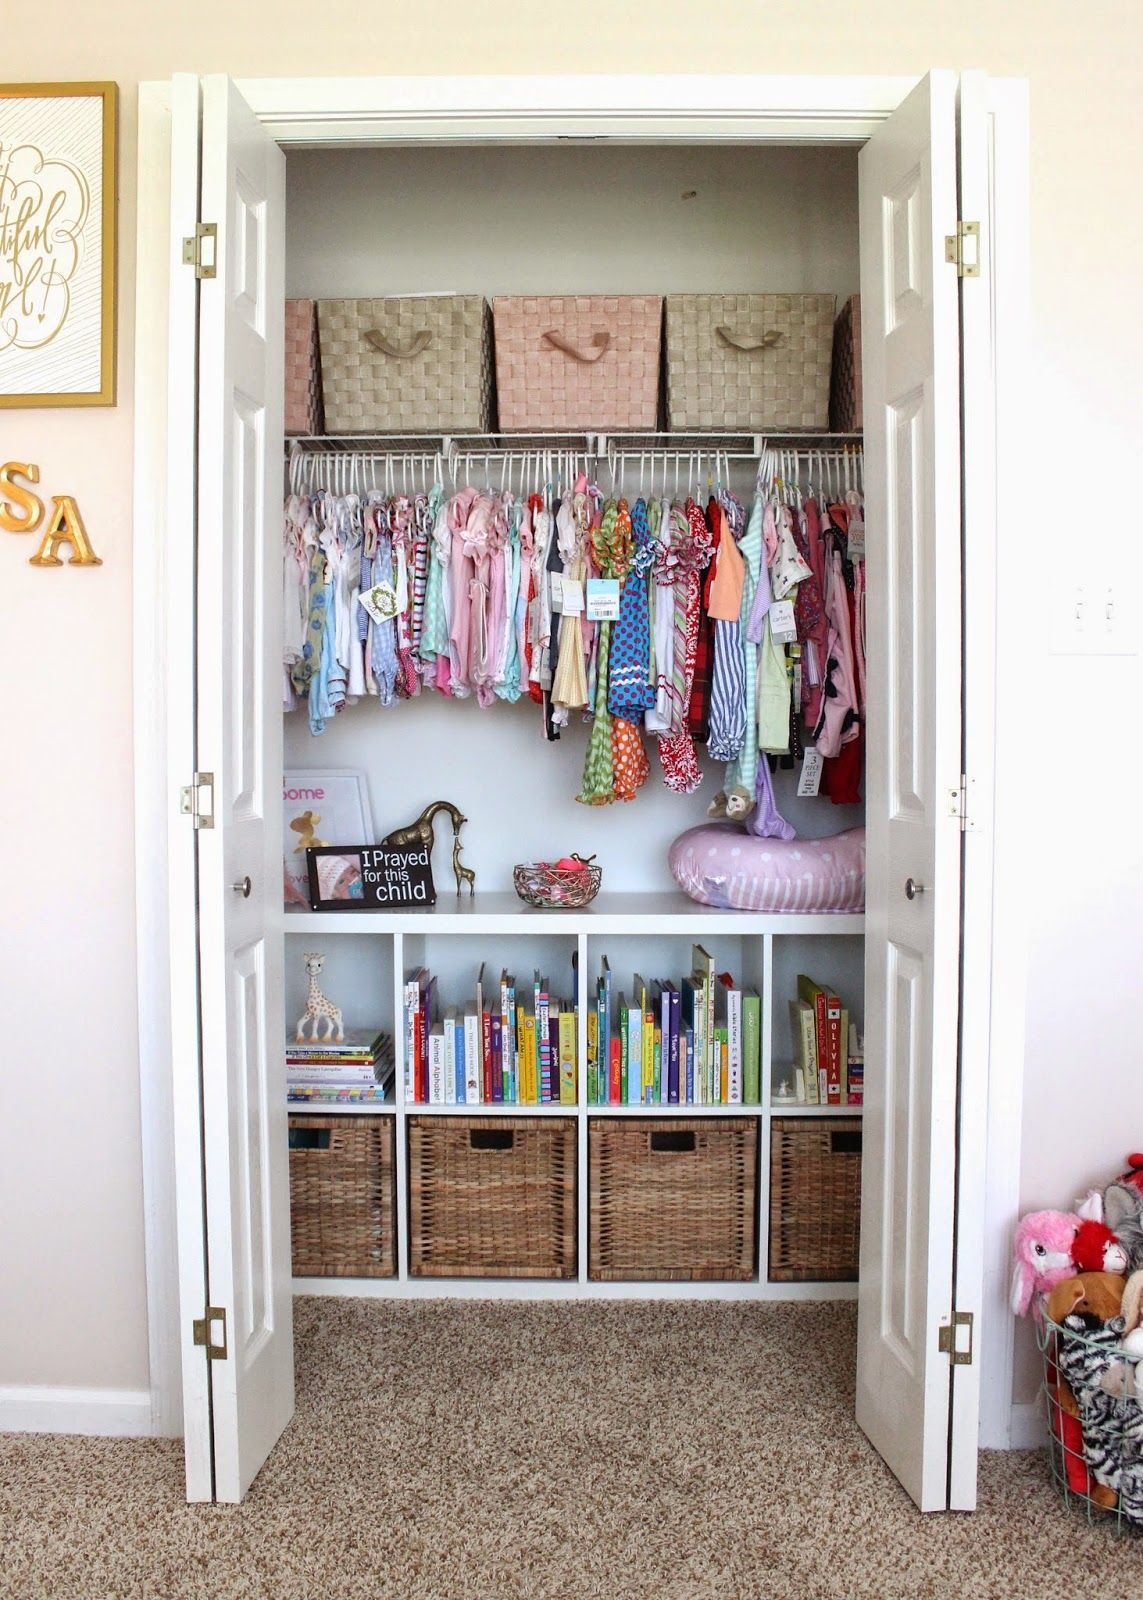 design ideas home kids innovative practical storage closet interior and